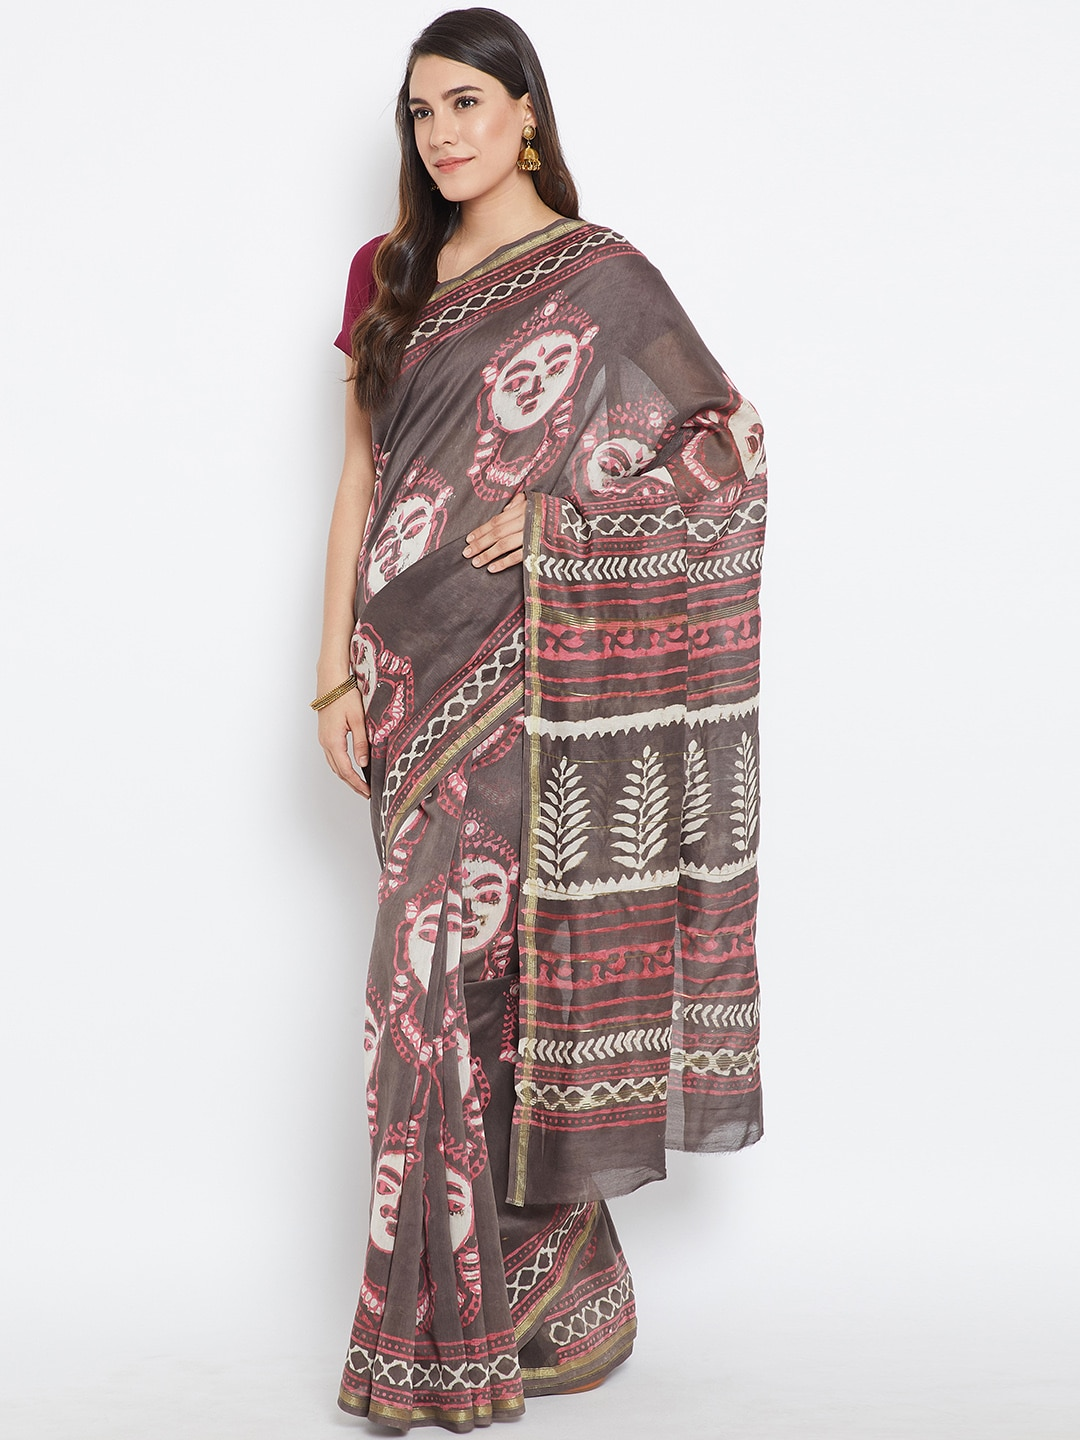 07d7fc44f1b4b Women Sarees Watches Scarves - Buy Women Sarees Watches Scarves online in  India